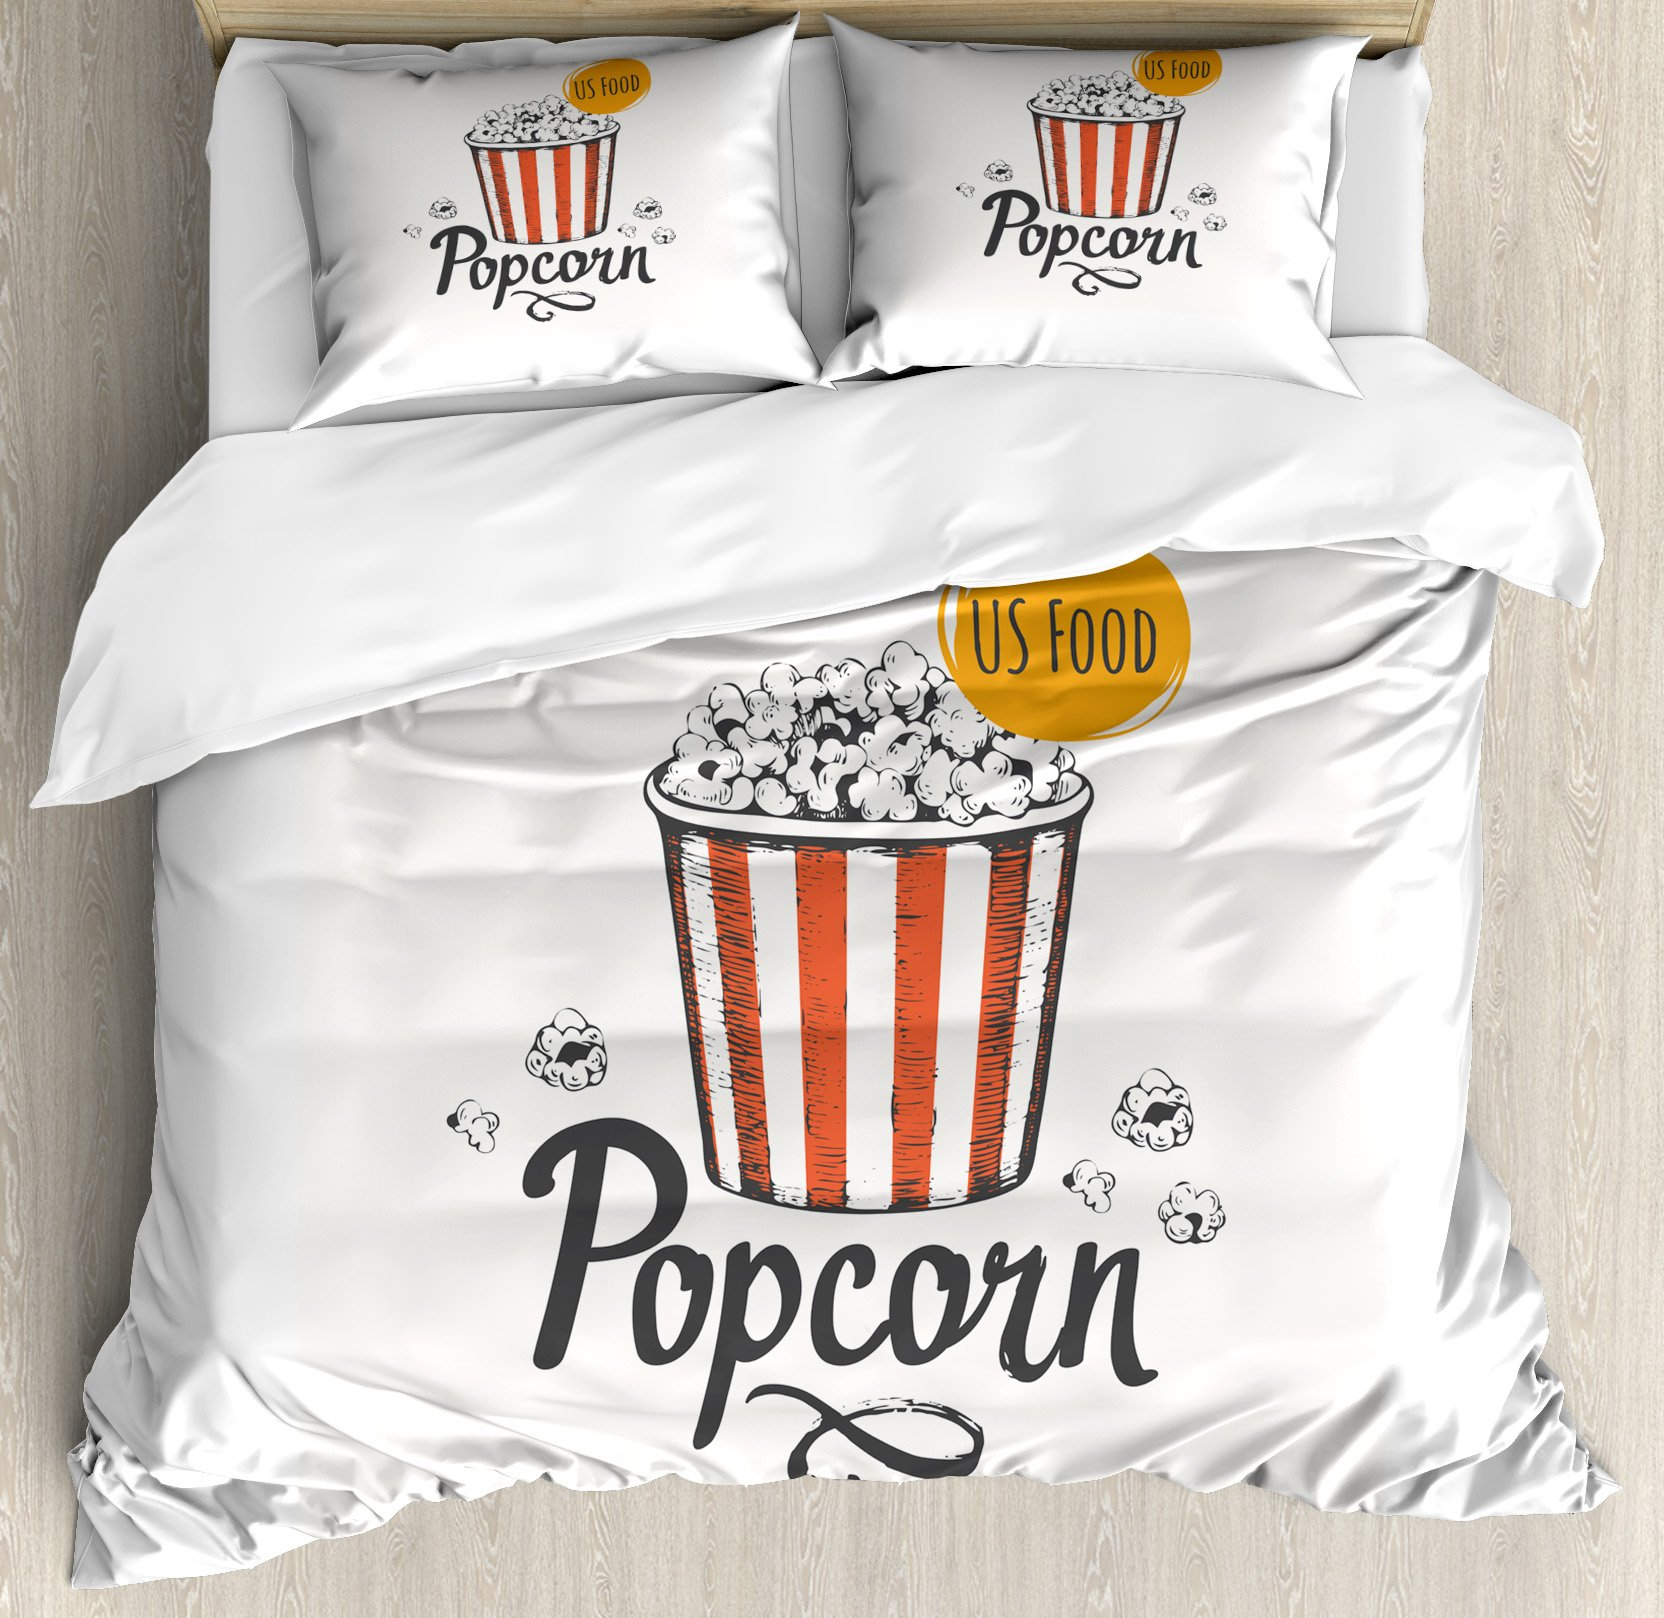 Ambesonne Movie Theater King Size Duvet Cover Set, Sketch Design Cinema Snack US Fast Food Pop Corn Art, Decorative 3 Piece Bedding Set with 2 Pillow Shams, Charcoal Grey Vermilion Marigold